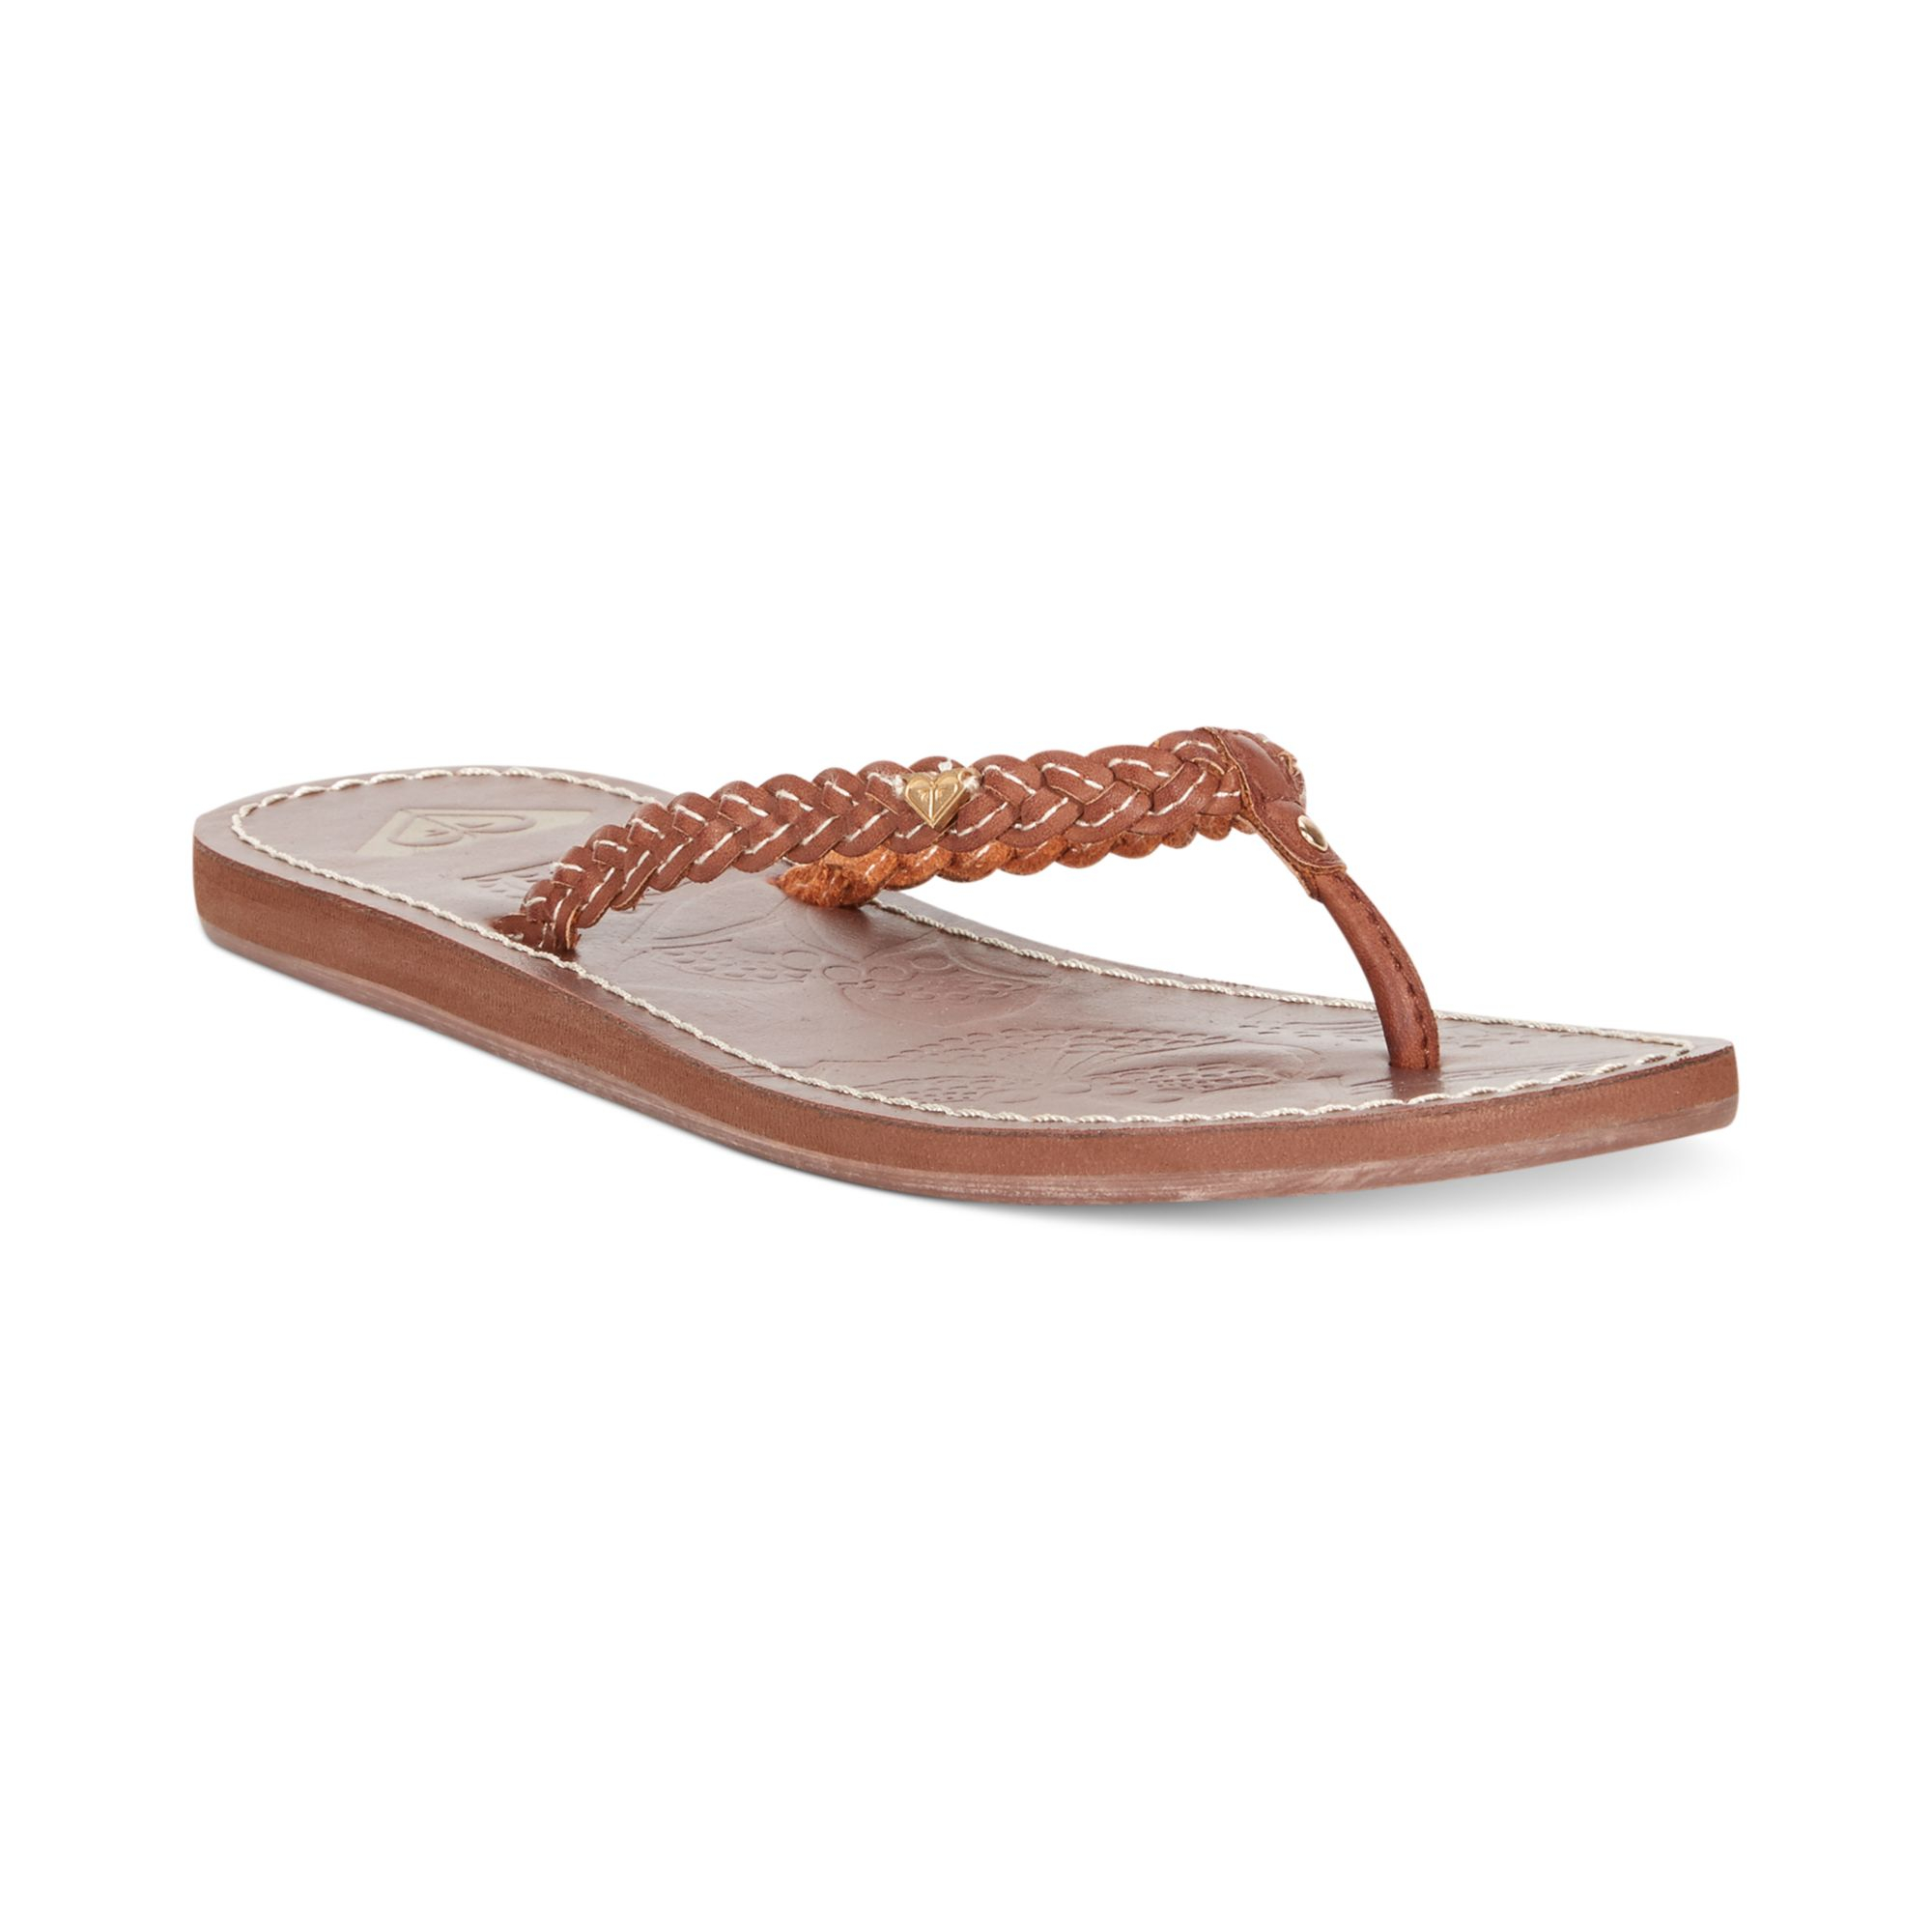 342b77811 Lyst - Roxy Mateo Braided Thong Sandals in Brown